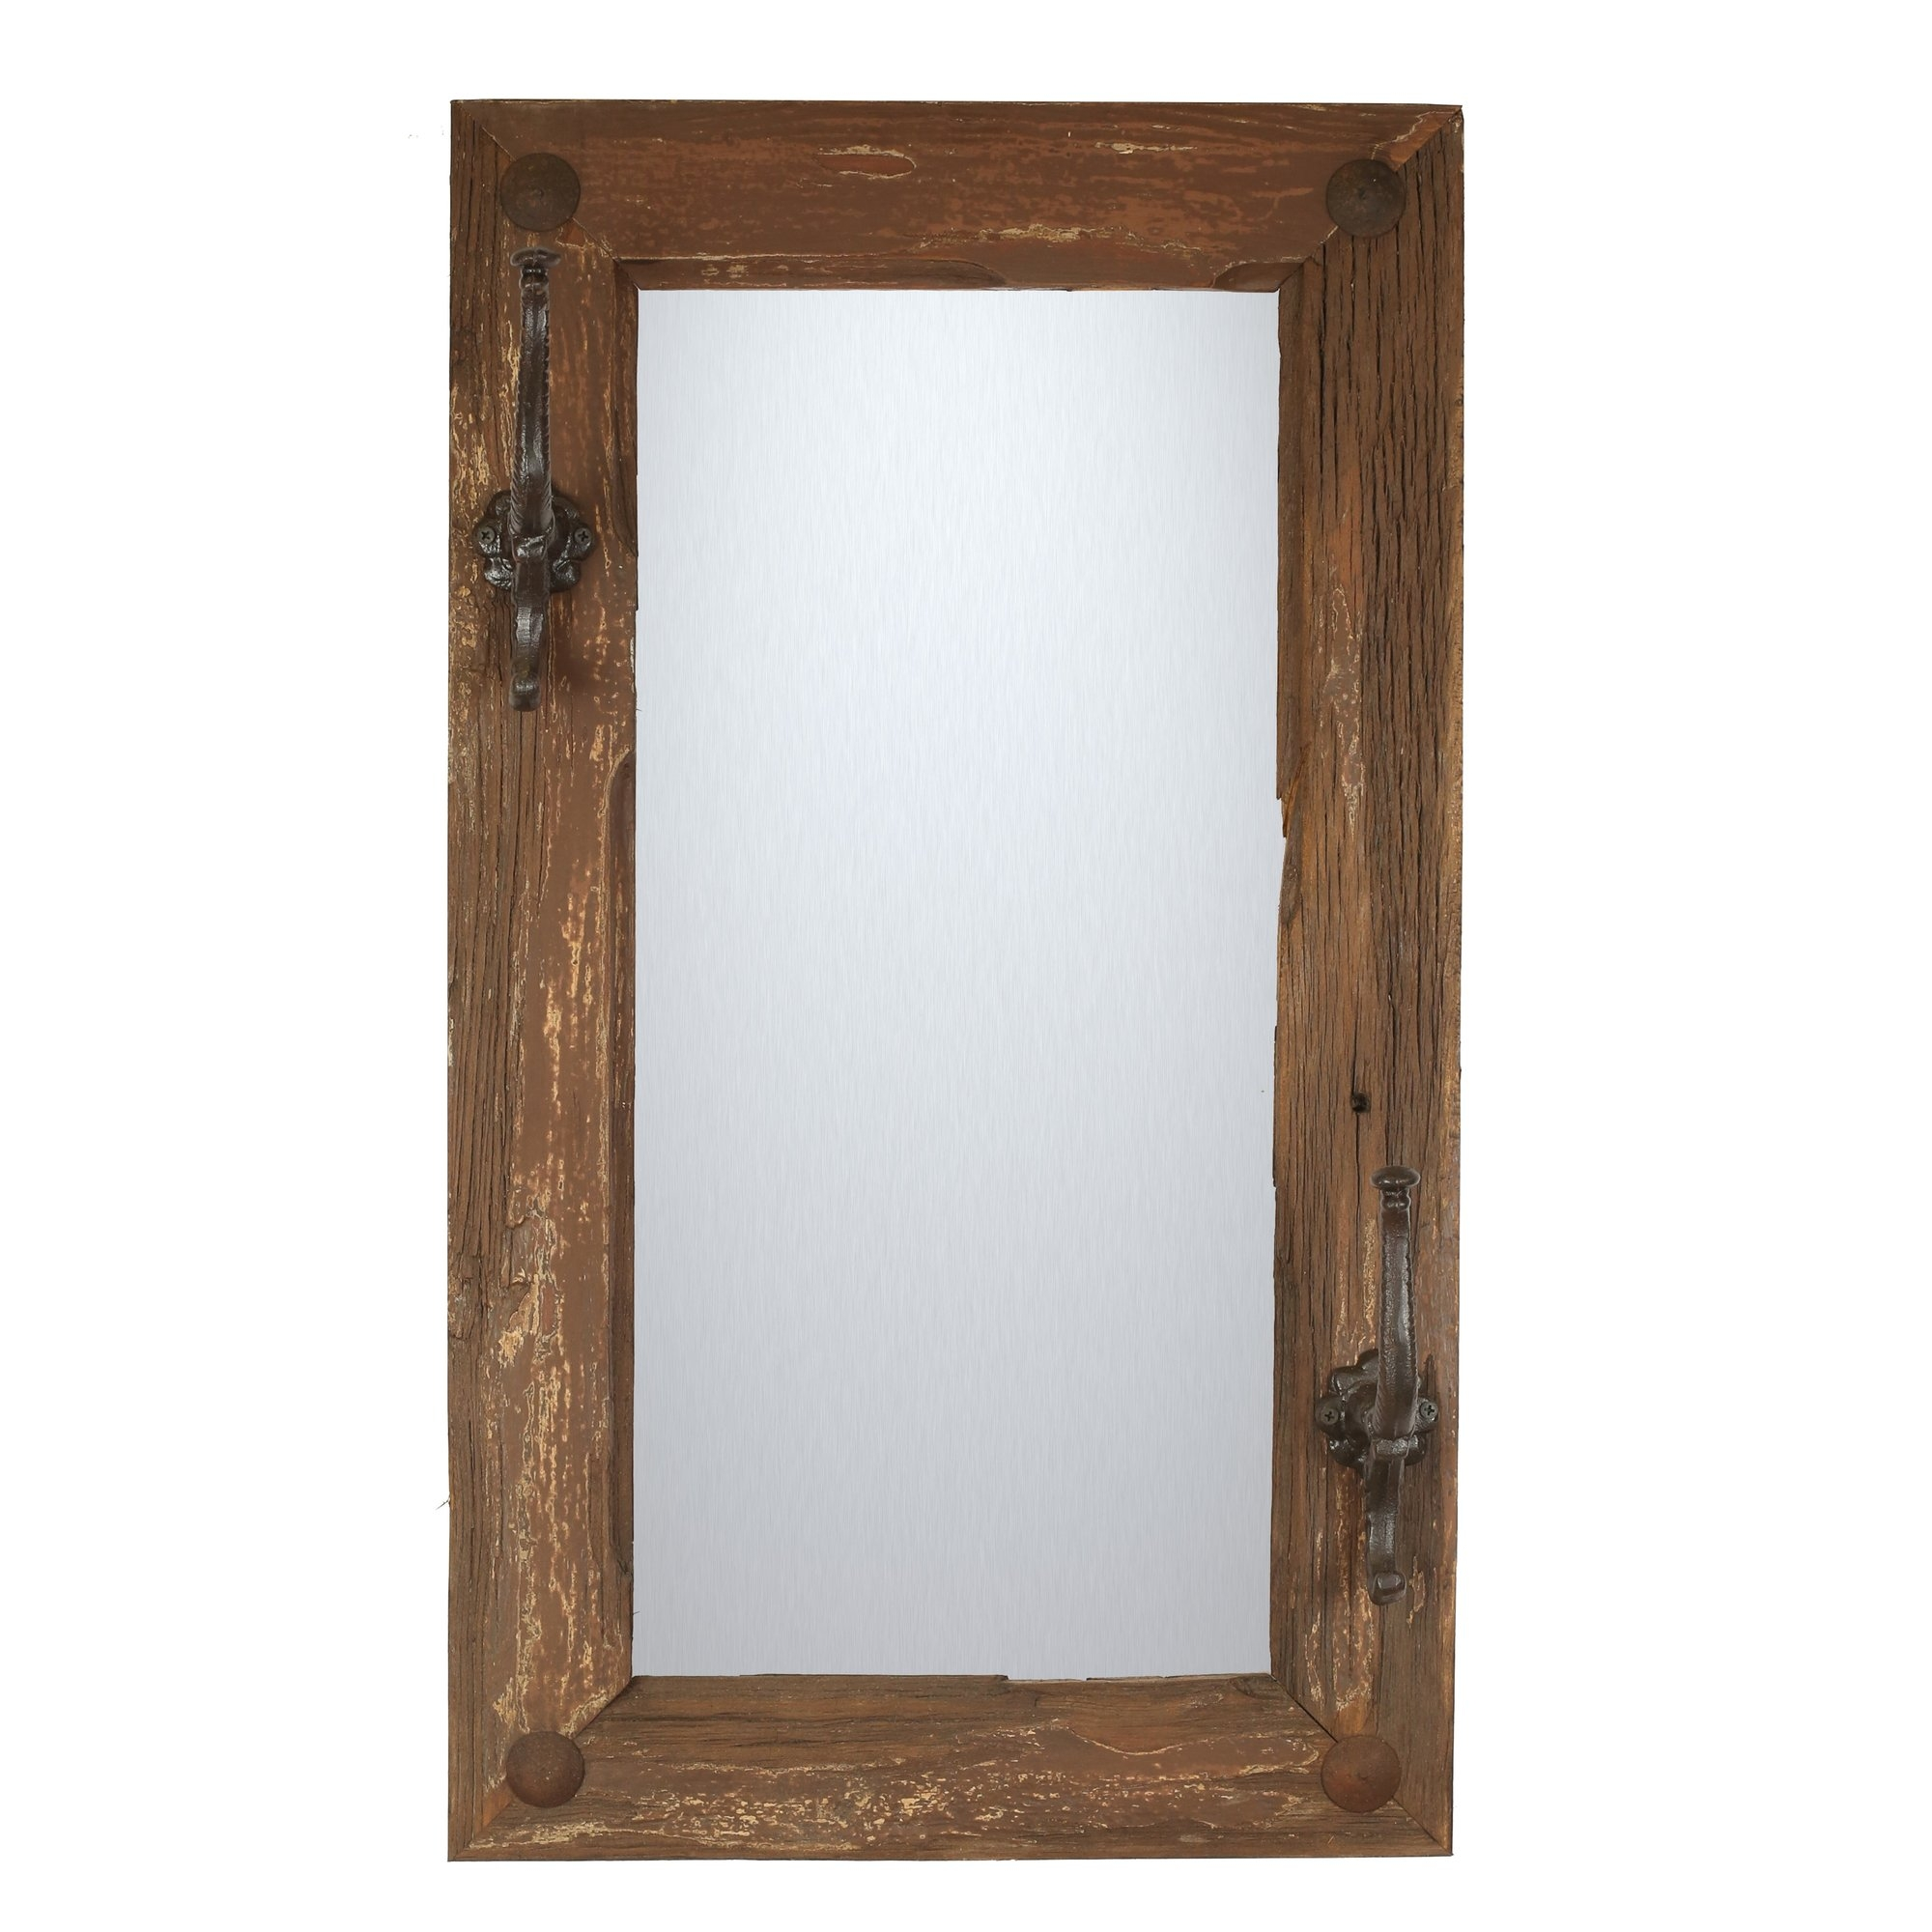 Rustic Wall Mirrors Youll Love Wayfair Throughout Old Looking Mirrors (Image 12 of 15)